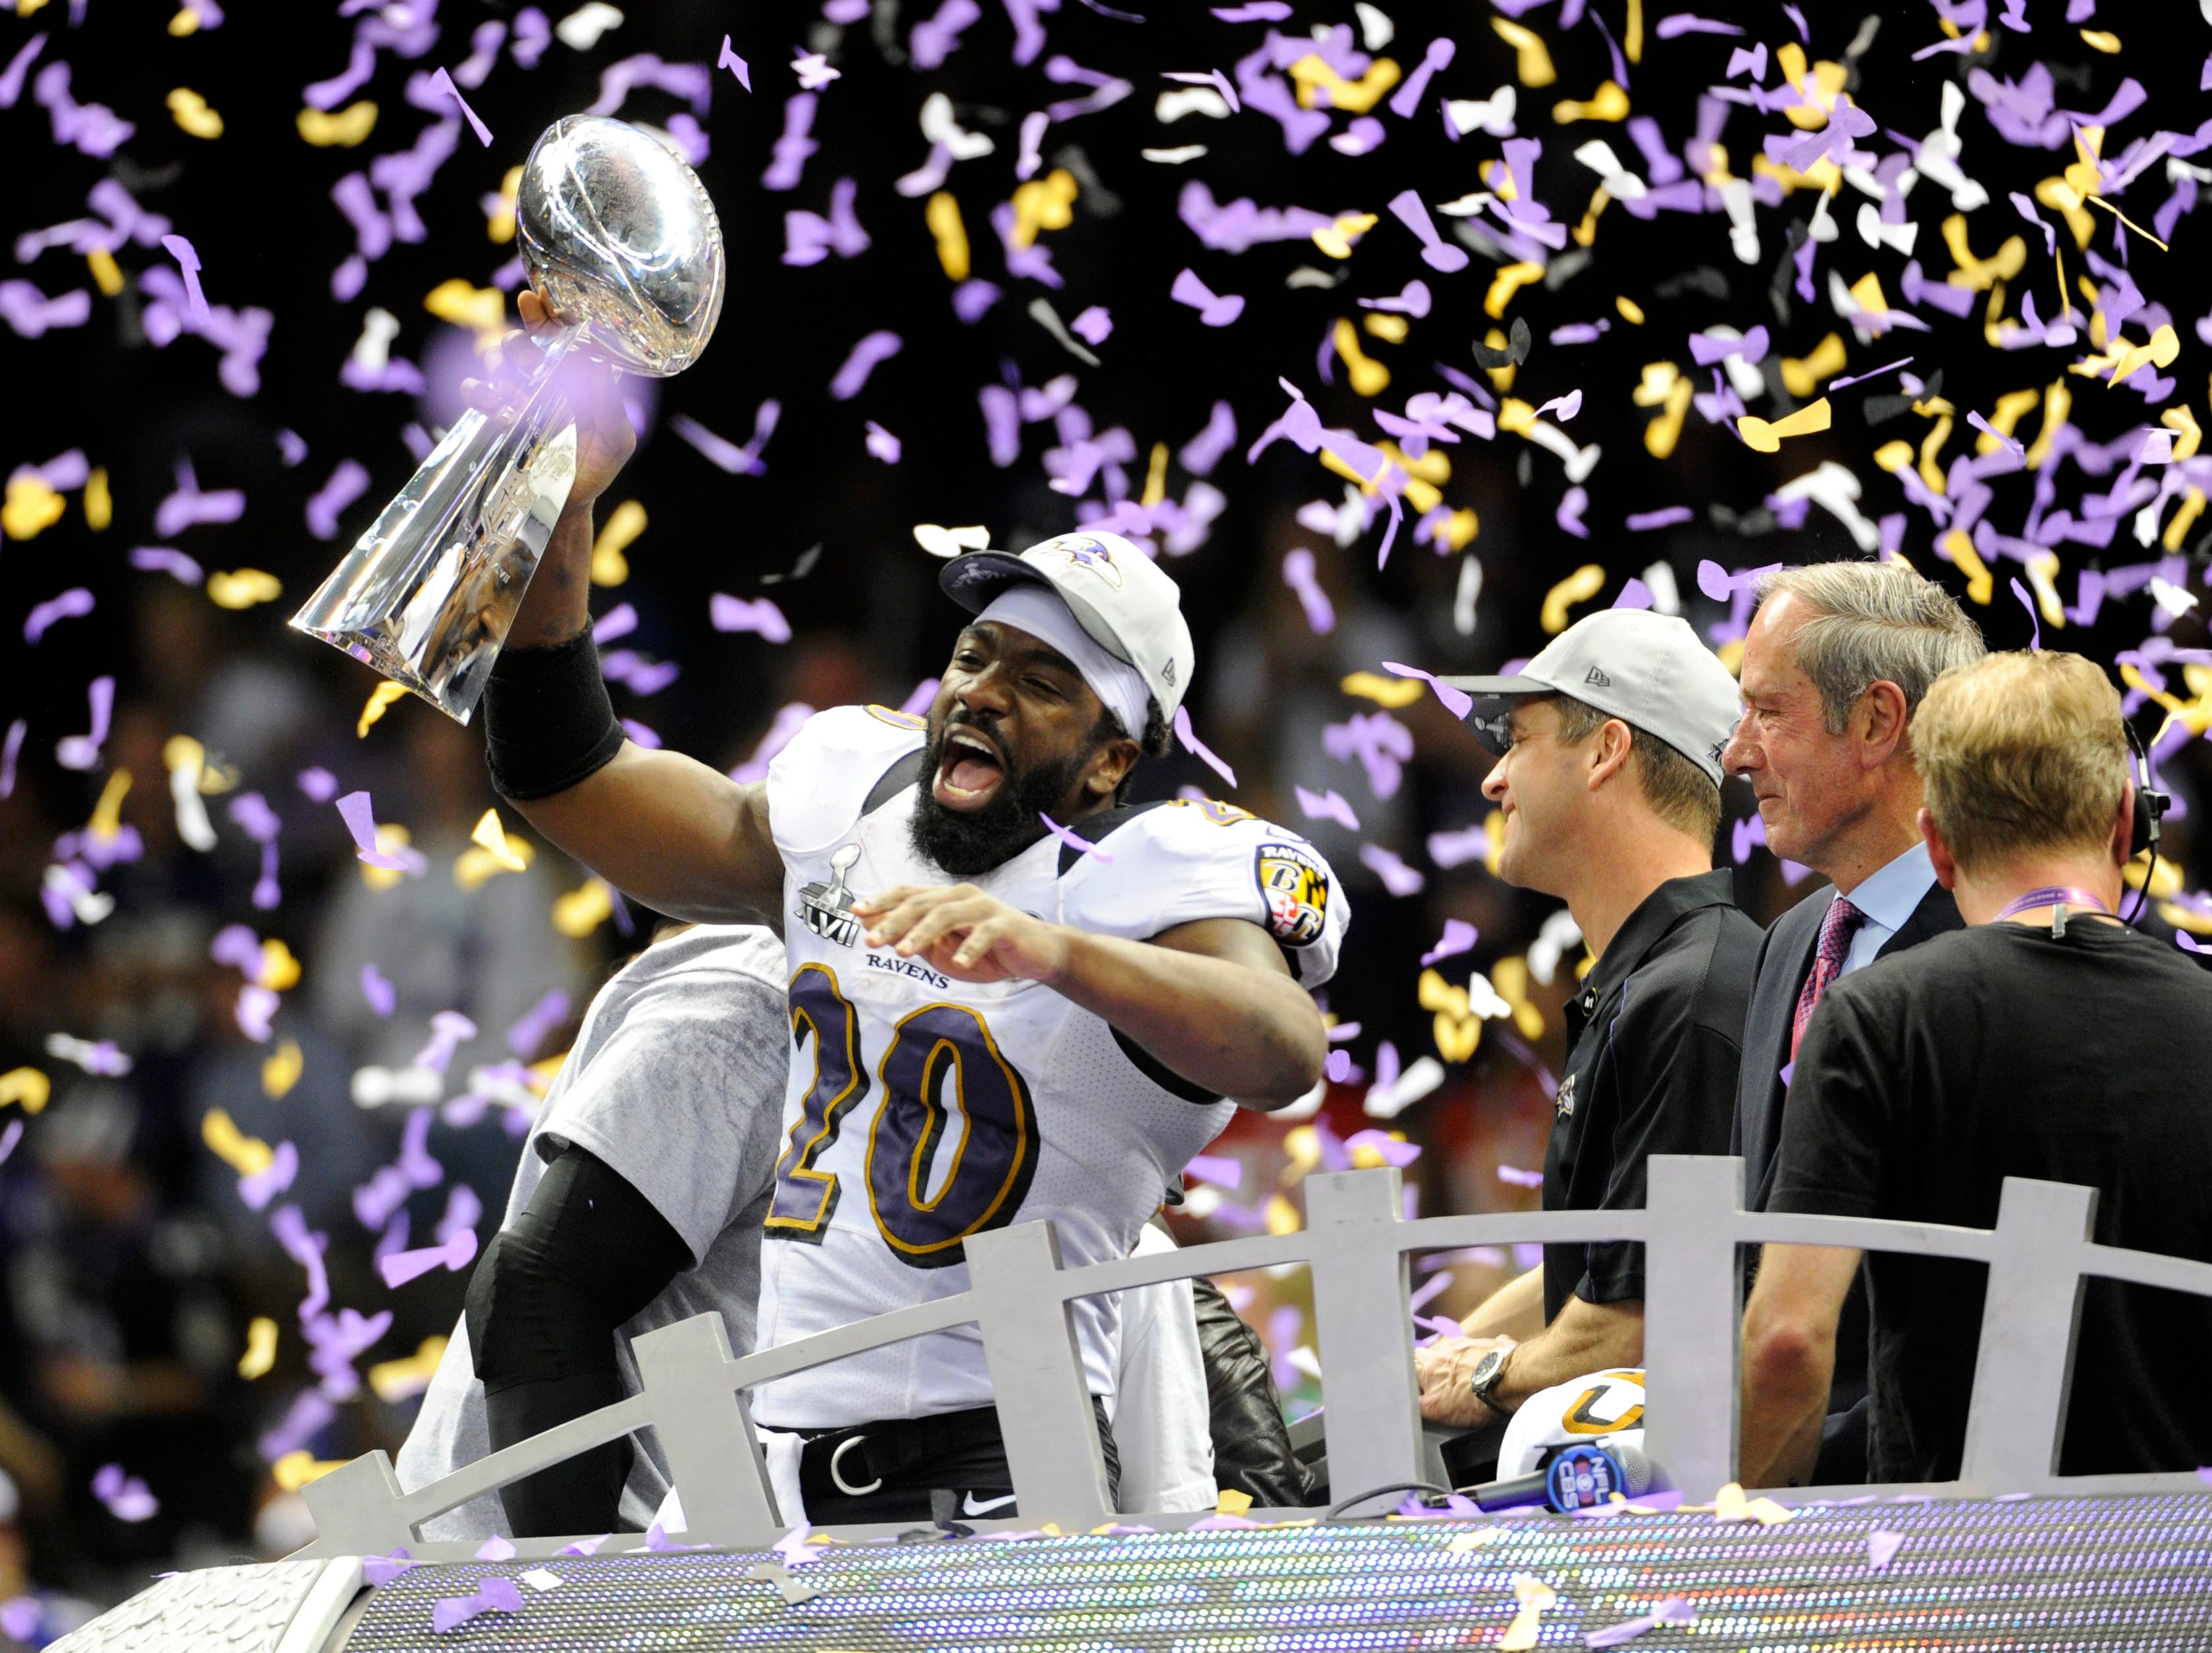 Ed Reed was a five-time all-pro who made nine Pro Bowls. He was the defensive player of the year in 2004 and won Super Bowl XLVII with the Baltimore Ravens. He retired with 64 career interceptions and 13 touchdowns.